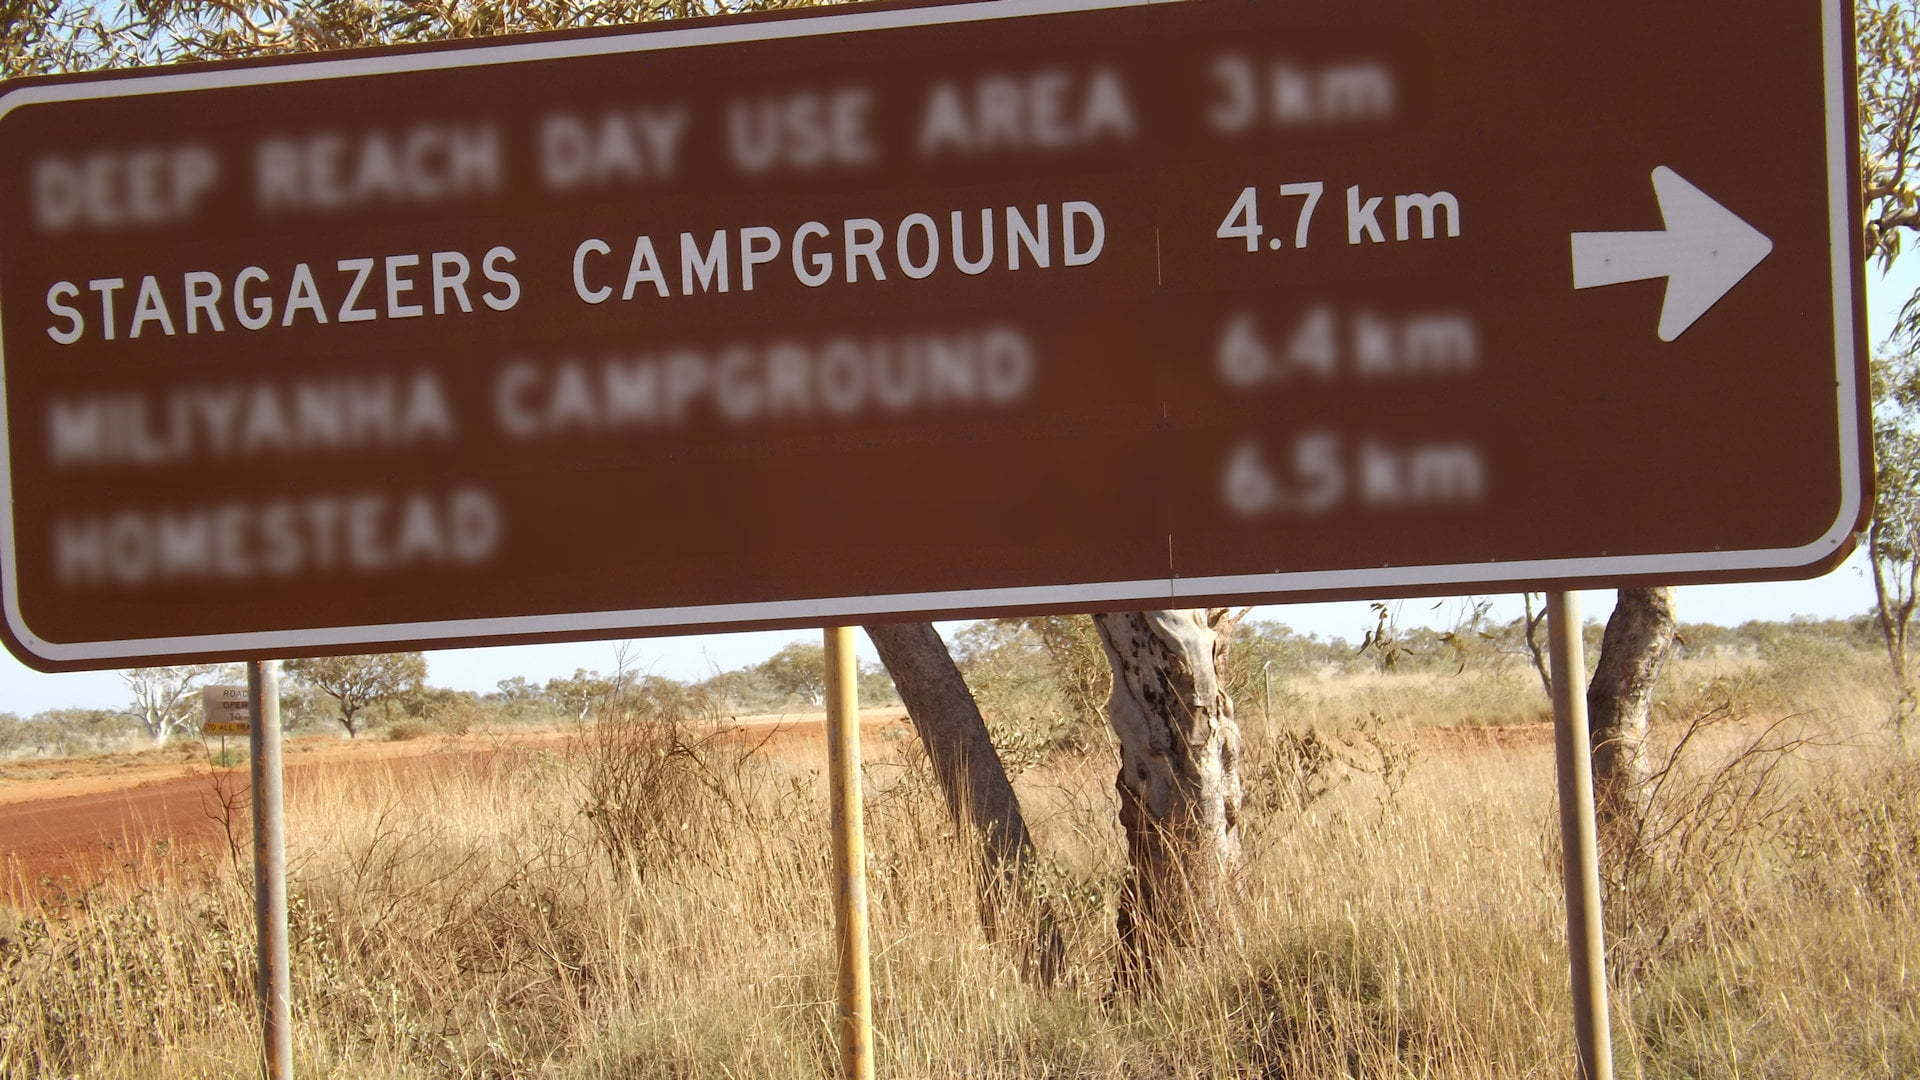 Brown sign at Millstream Chichester National Park showing Stargazers Campground